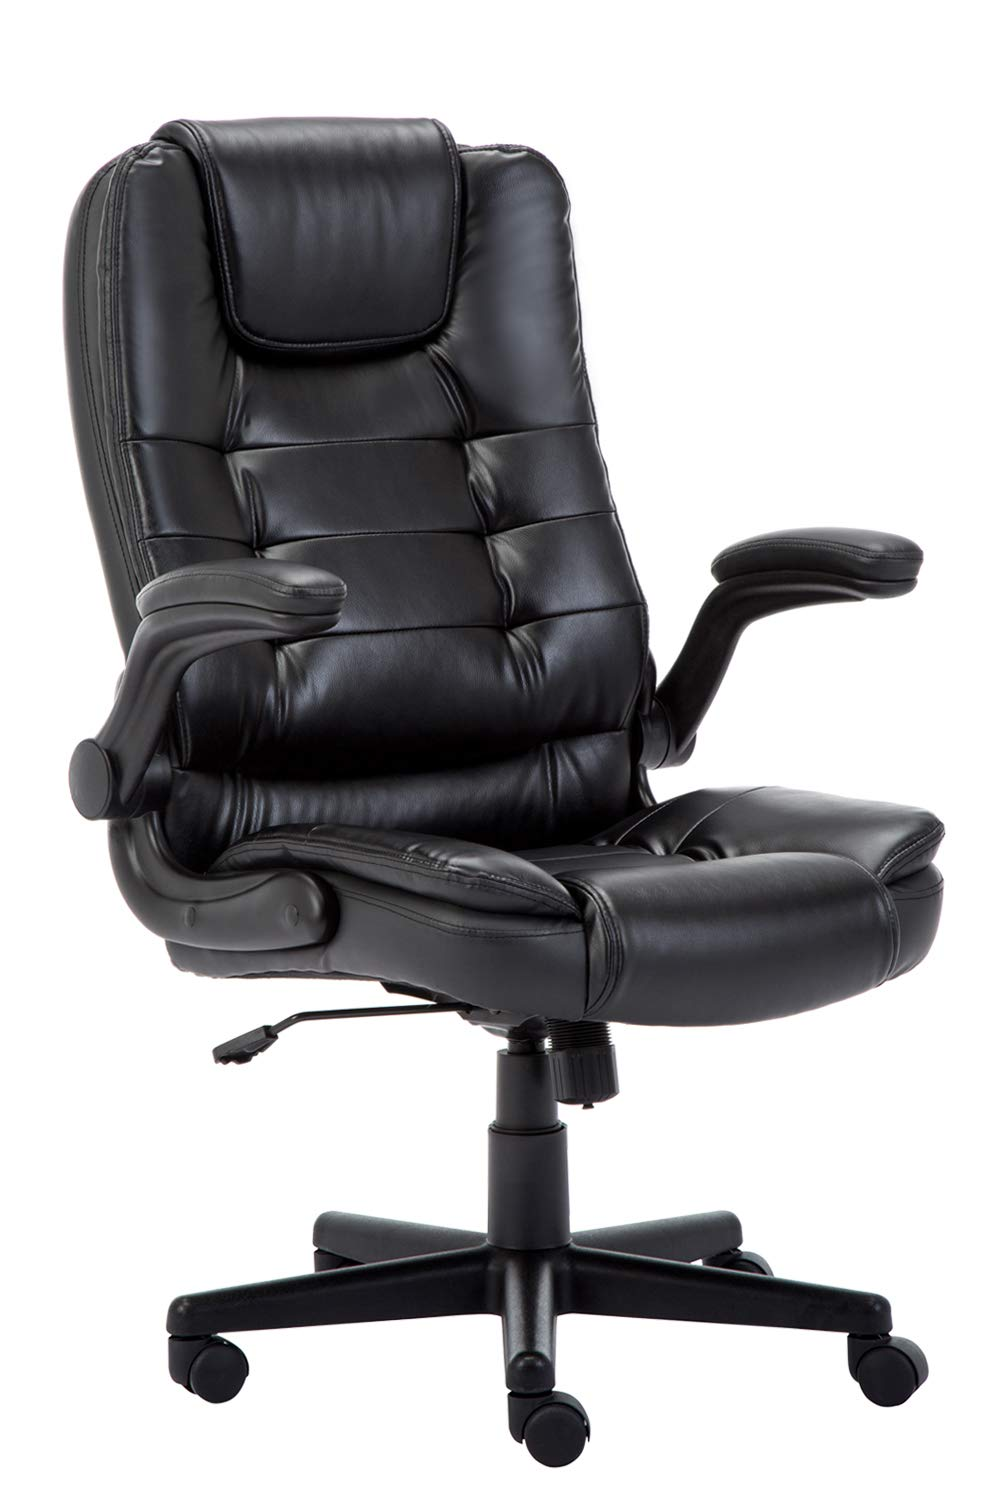 Leather Office Executive Boss Chair Computer Chair Foldable Arms Ergonomic Swivel Gaming Chair WCG DE